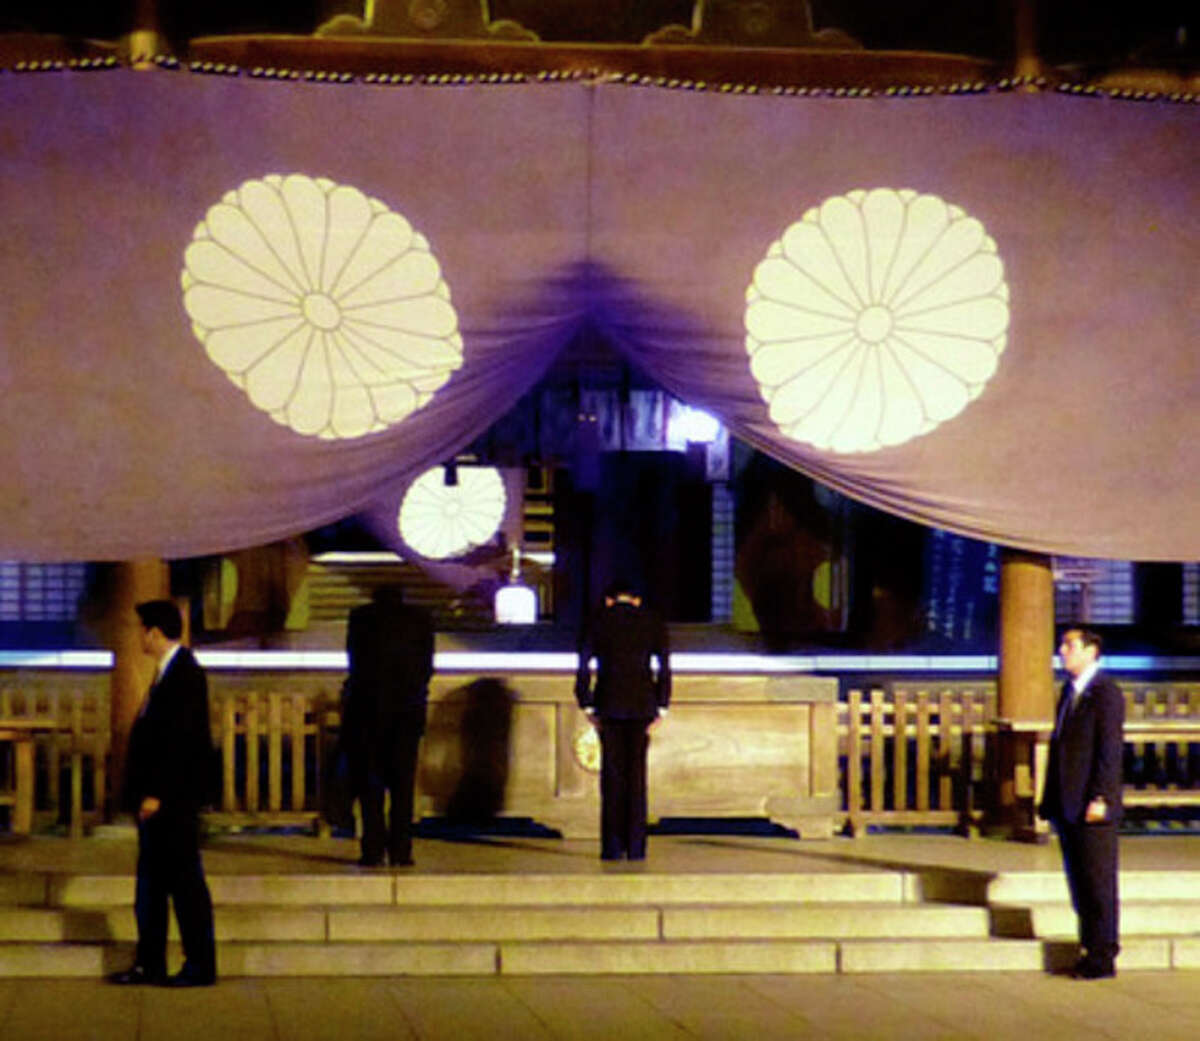 In this Sunday, April 21, 2013 photo, Japan's Deputy Prime Minister and Finance Minister Taro Aso, center right, bows as he visits the Yasukuni Shrine in Tokyo in the evening, following a visit by Keiji Furuya, state minister in charge of North Korea's past abductions of Japanese nationals, earlier in the day. Japan?'s Prime Minister Shinzo Abe made donations and three Cabinet ministers including Aso prayed at Tokyo?'s militarist shrine over the weekend, sparking South Korean anger. (AP Photo/Kyodo News) JAPAN OUT, MANDATORY CREDIT, NO LICENSING IN CHINA, HONG KONG, JAPAN, SOUTH KOREA AND FRANCE